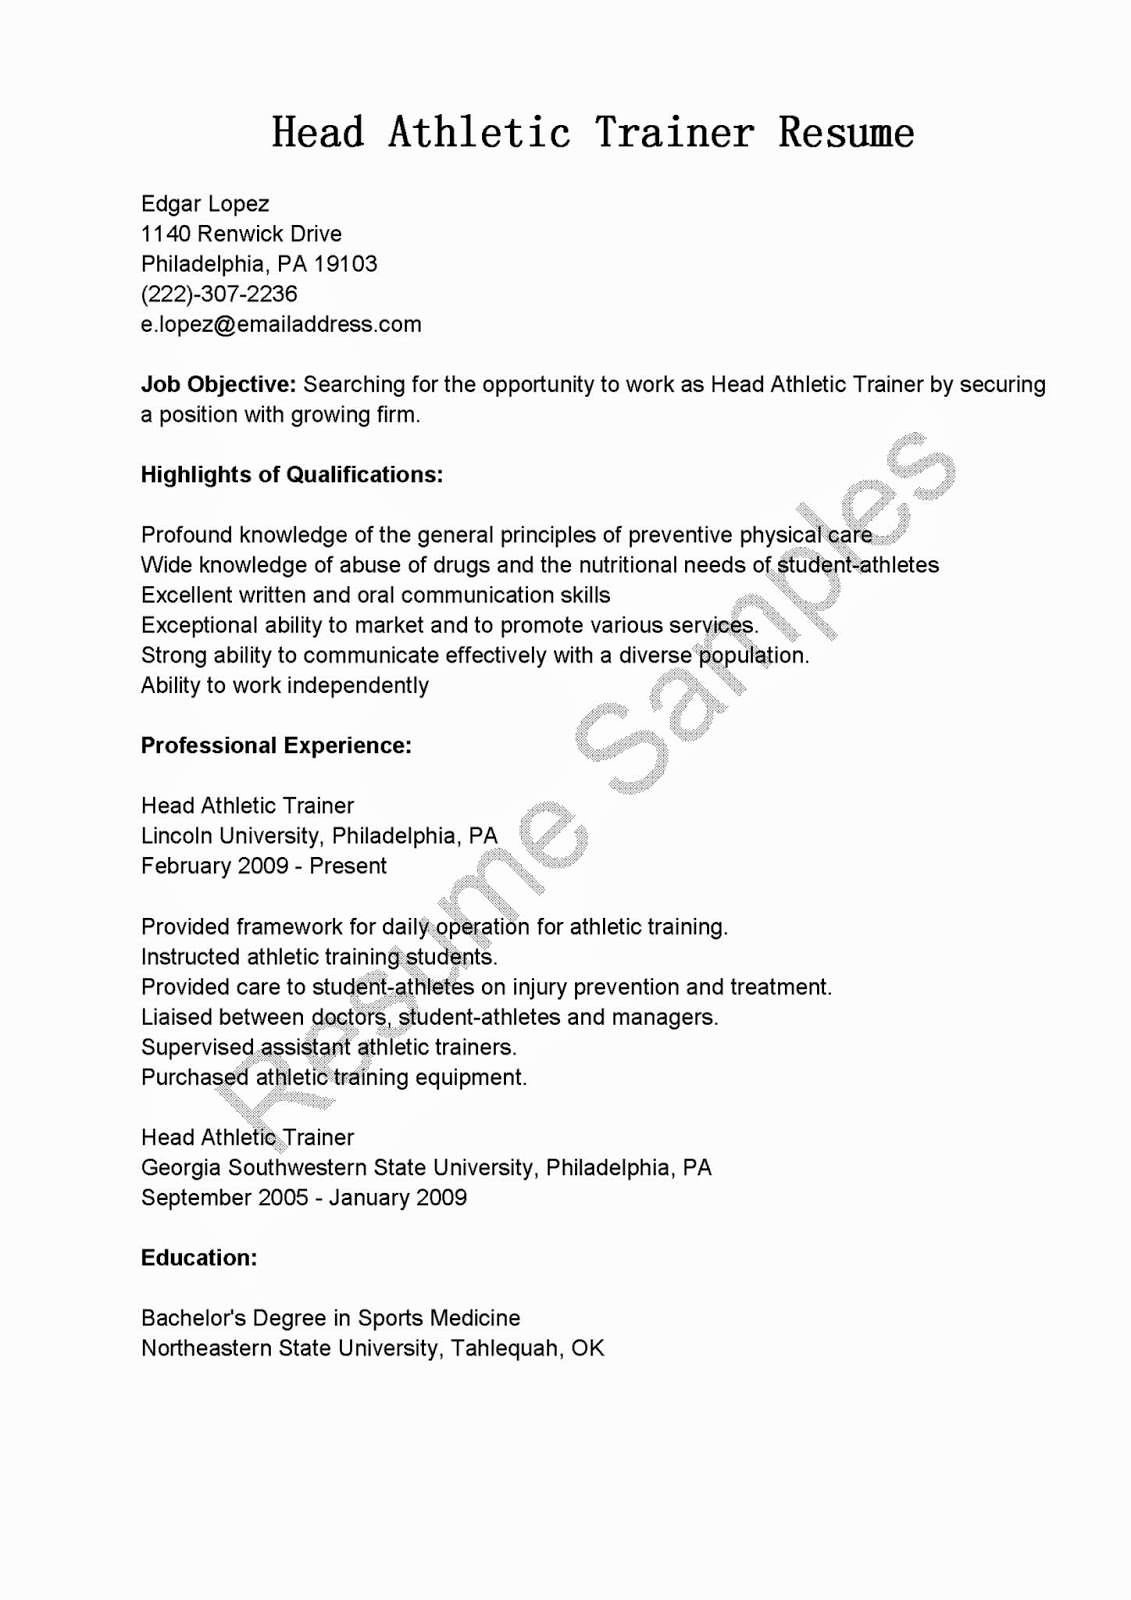 Student athlete Resume Example Lovely 30 Basic Student athlete Resume Jv O – Resume Samples